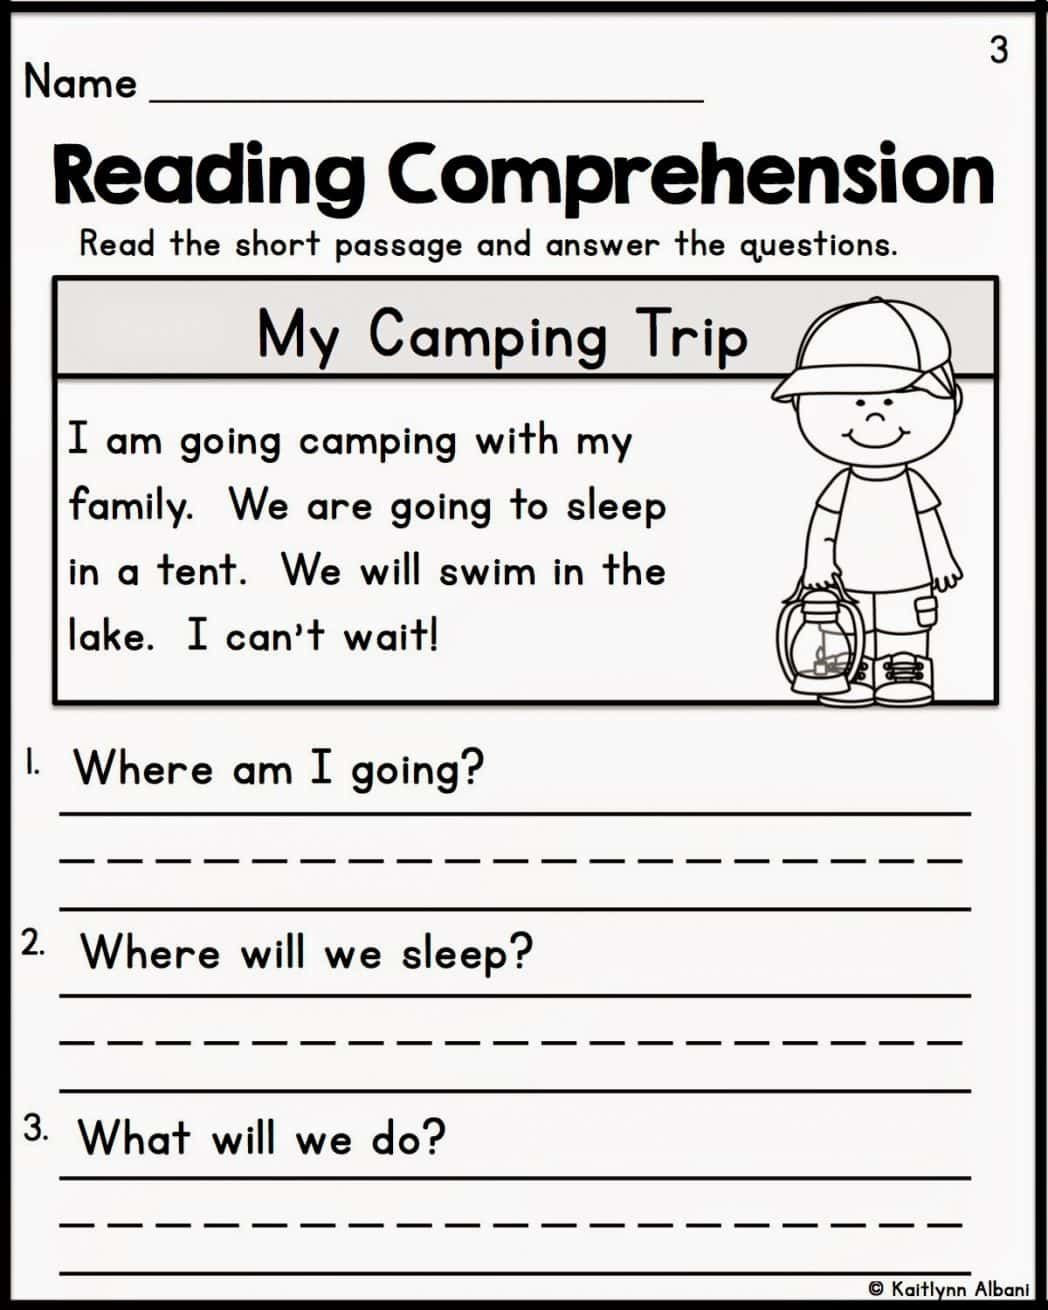 prehension Worksheets For Grade 1 Free